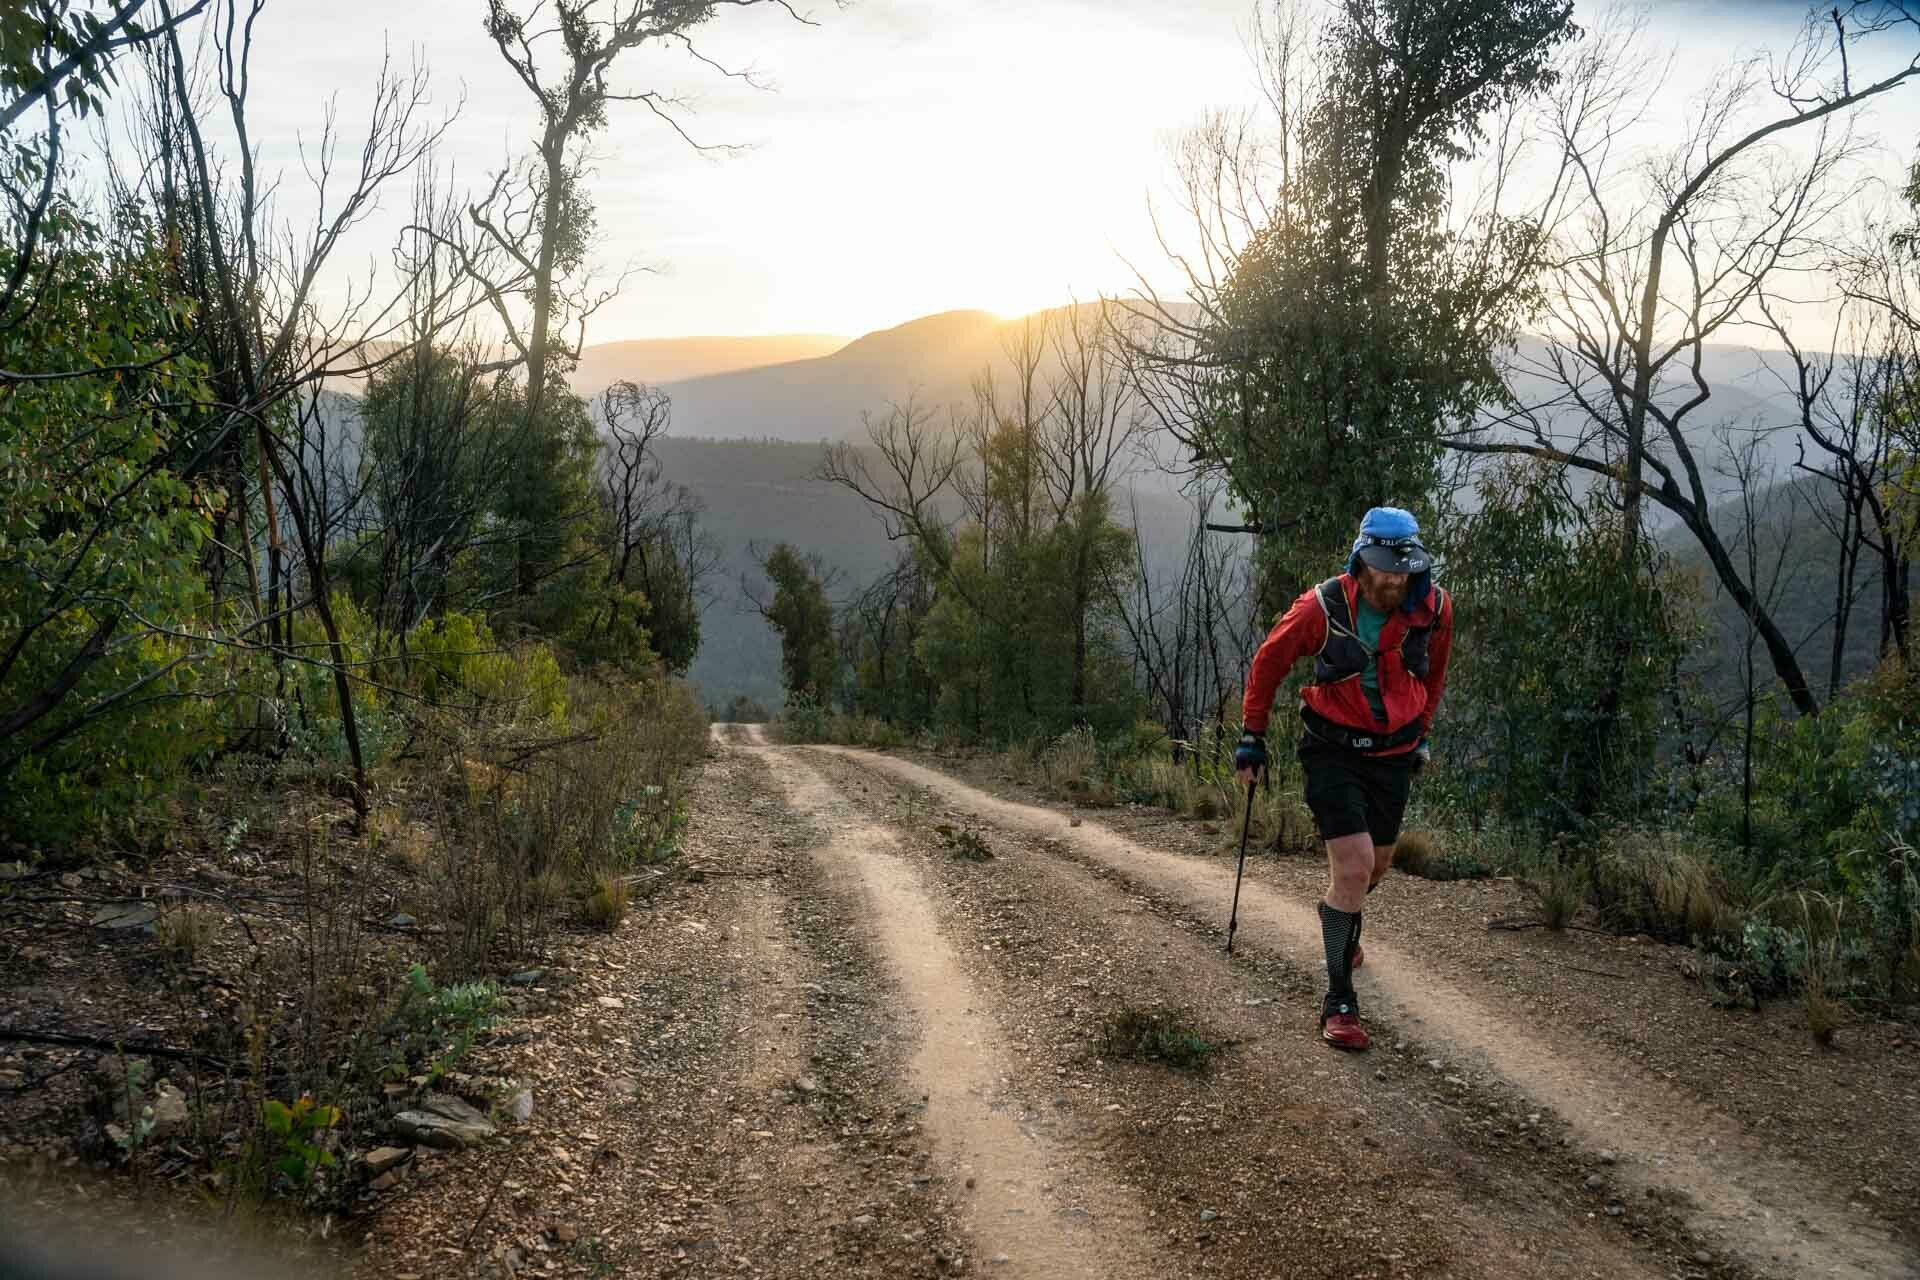 McMillans Walking Track, Beau Miles, shot by Chris ord, trail running, sunrise, uphill, Victoria, victorian high country